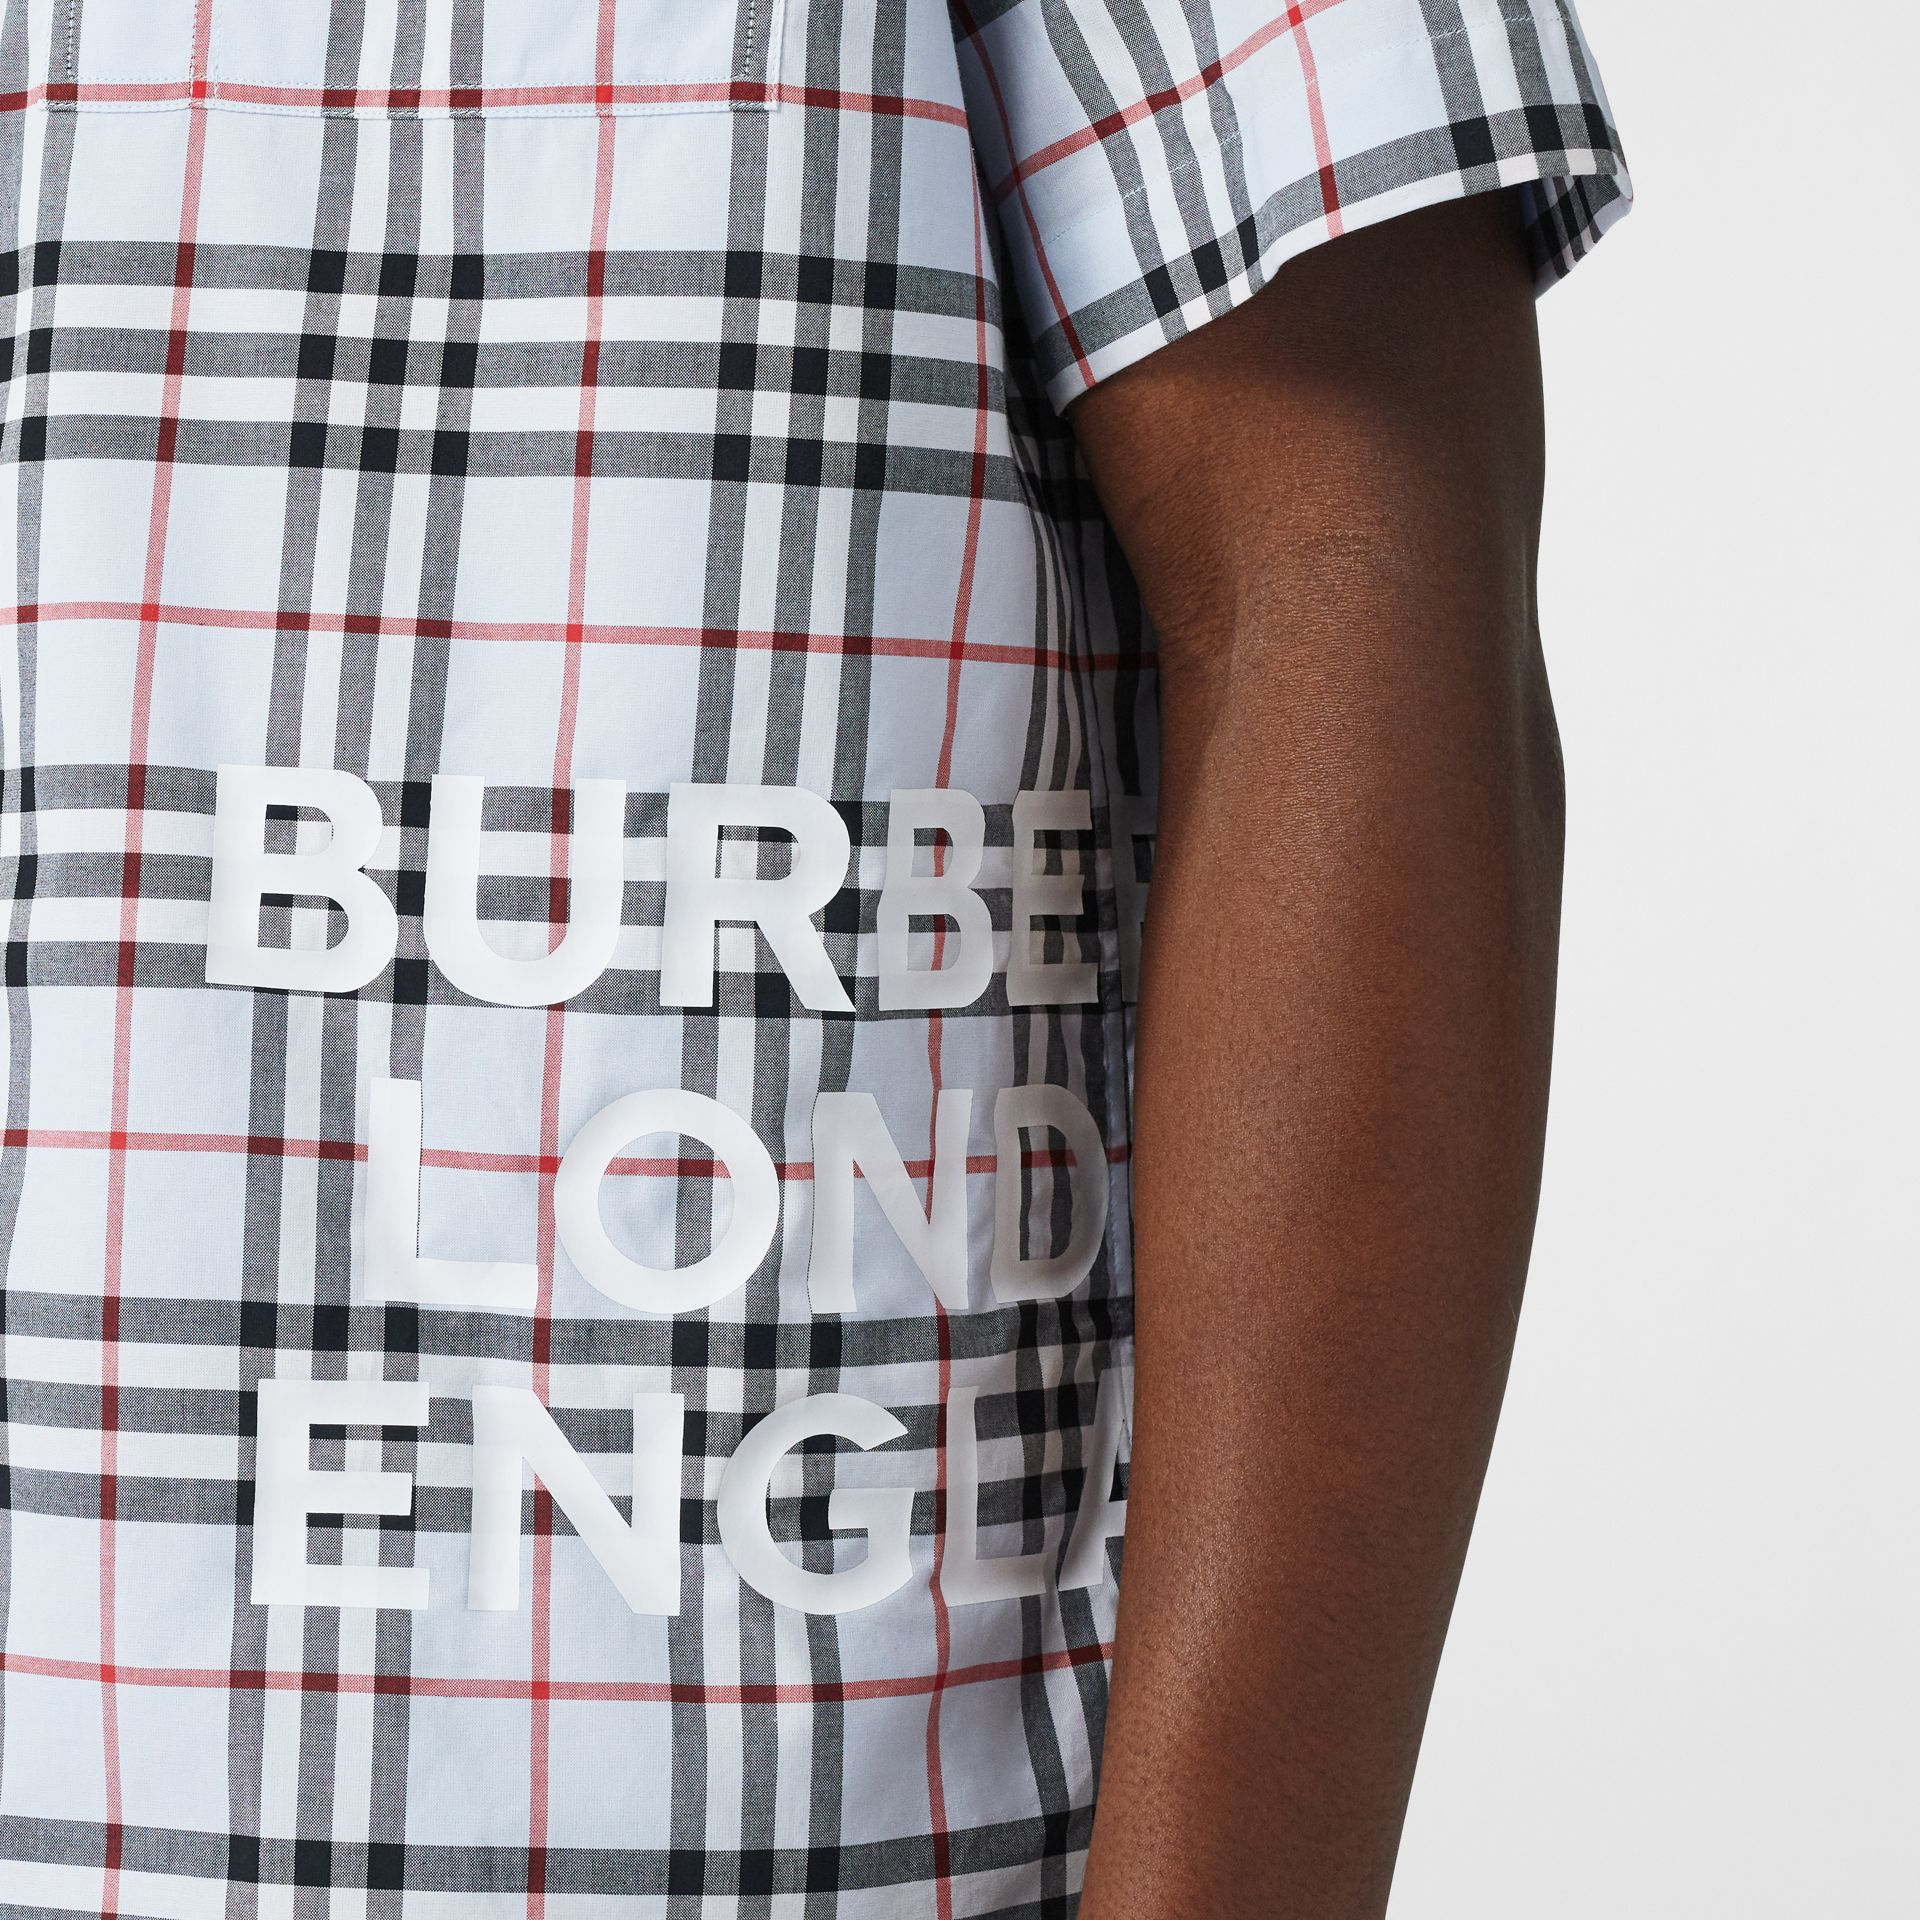 Short-sleeve Vintage Check Cotton Oversized Shirt in Pale Blue - Men | Burberry - gallery image 5